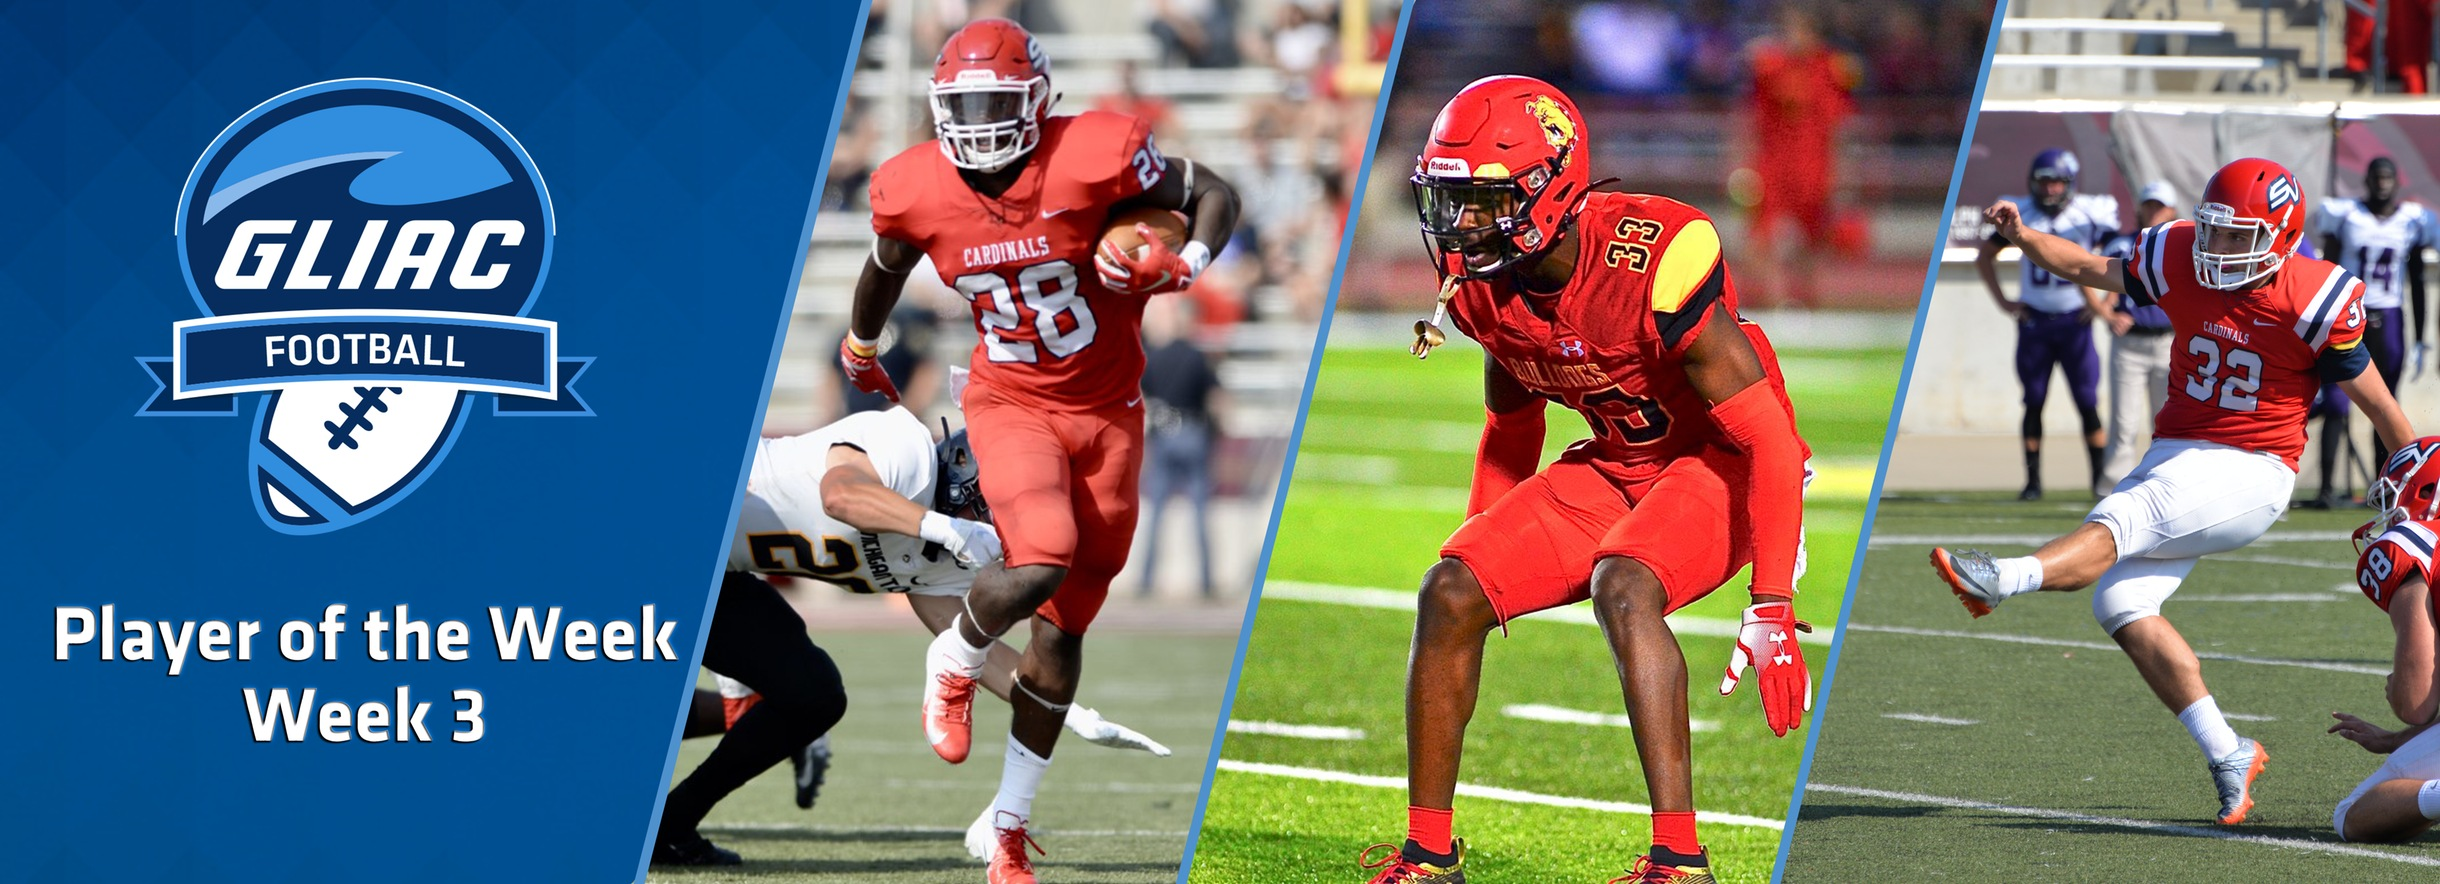 FSU's Ceasar, and SVSU's McCrary & Luksic, Named GLIAC Football Players of the Week